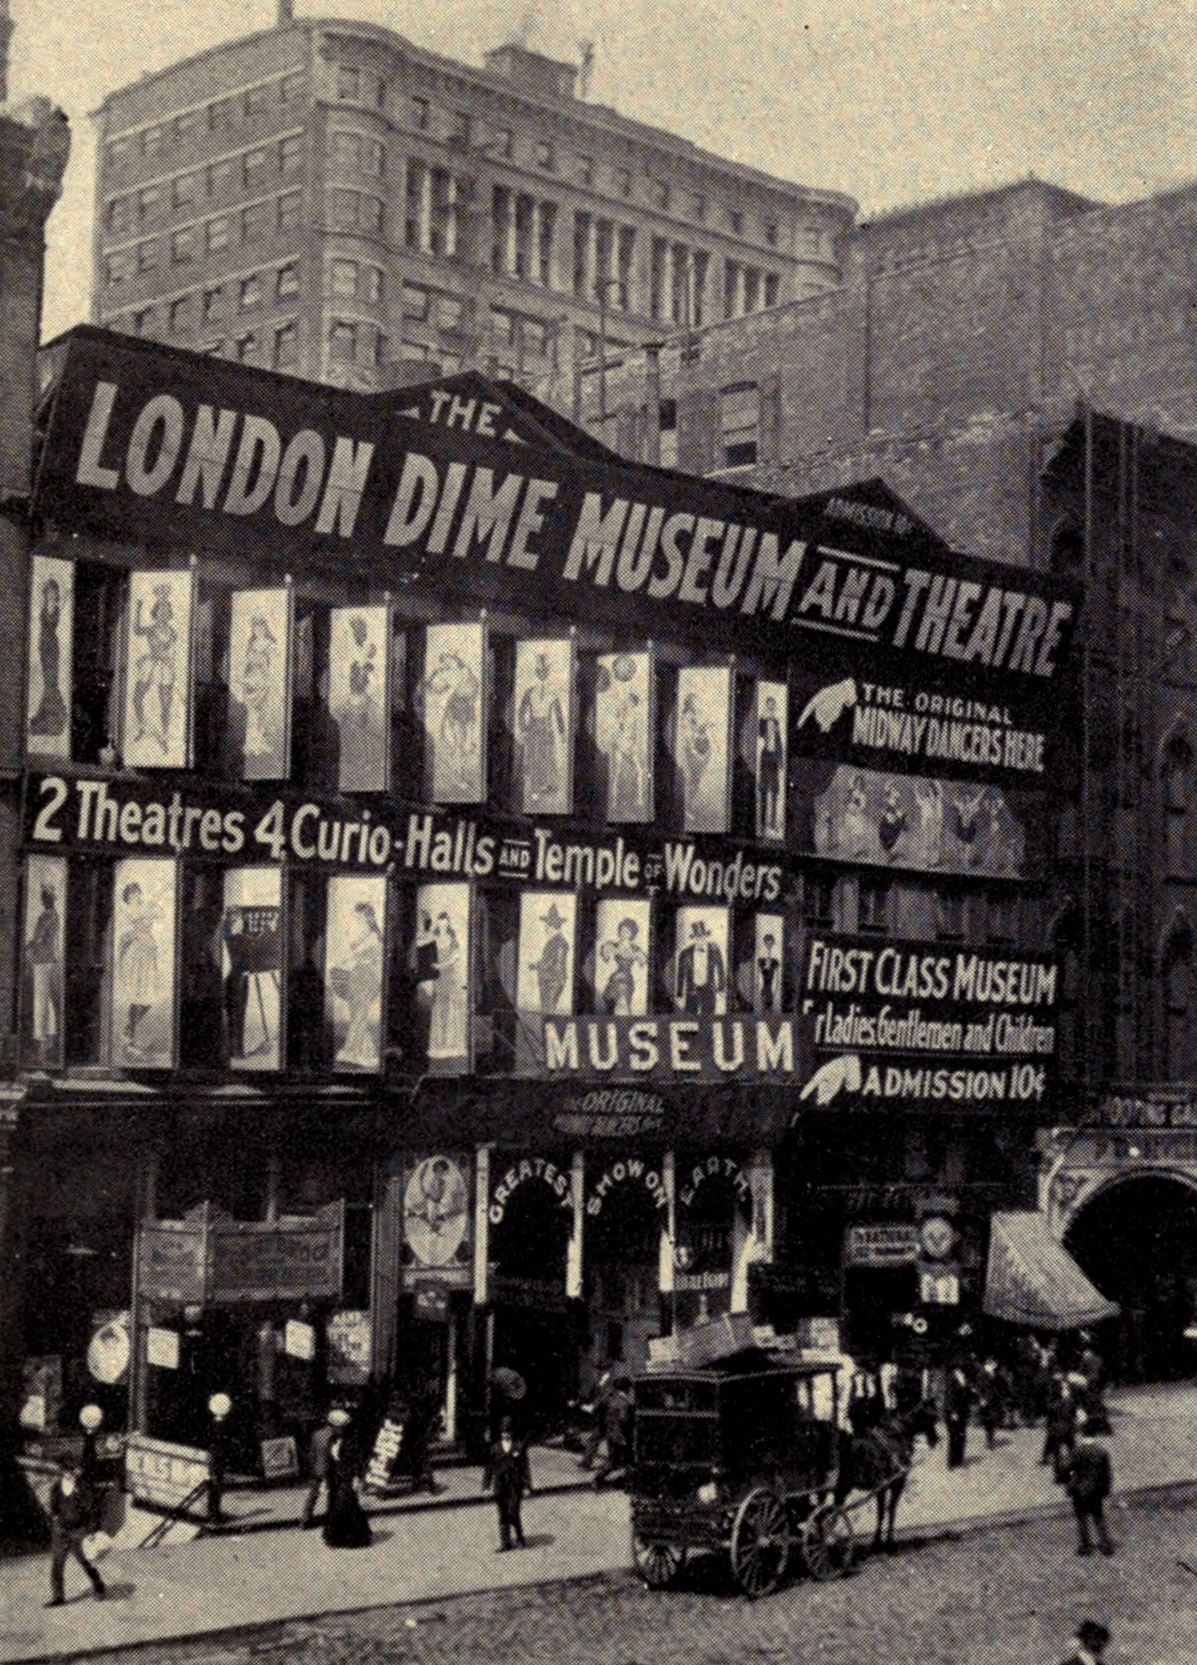 The London Dime Museum, Chicago, ca. 1907. Barney Harkin performed here in 1903.